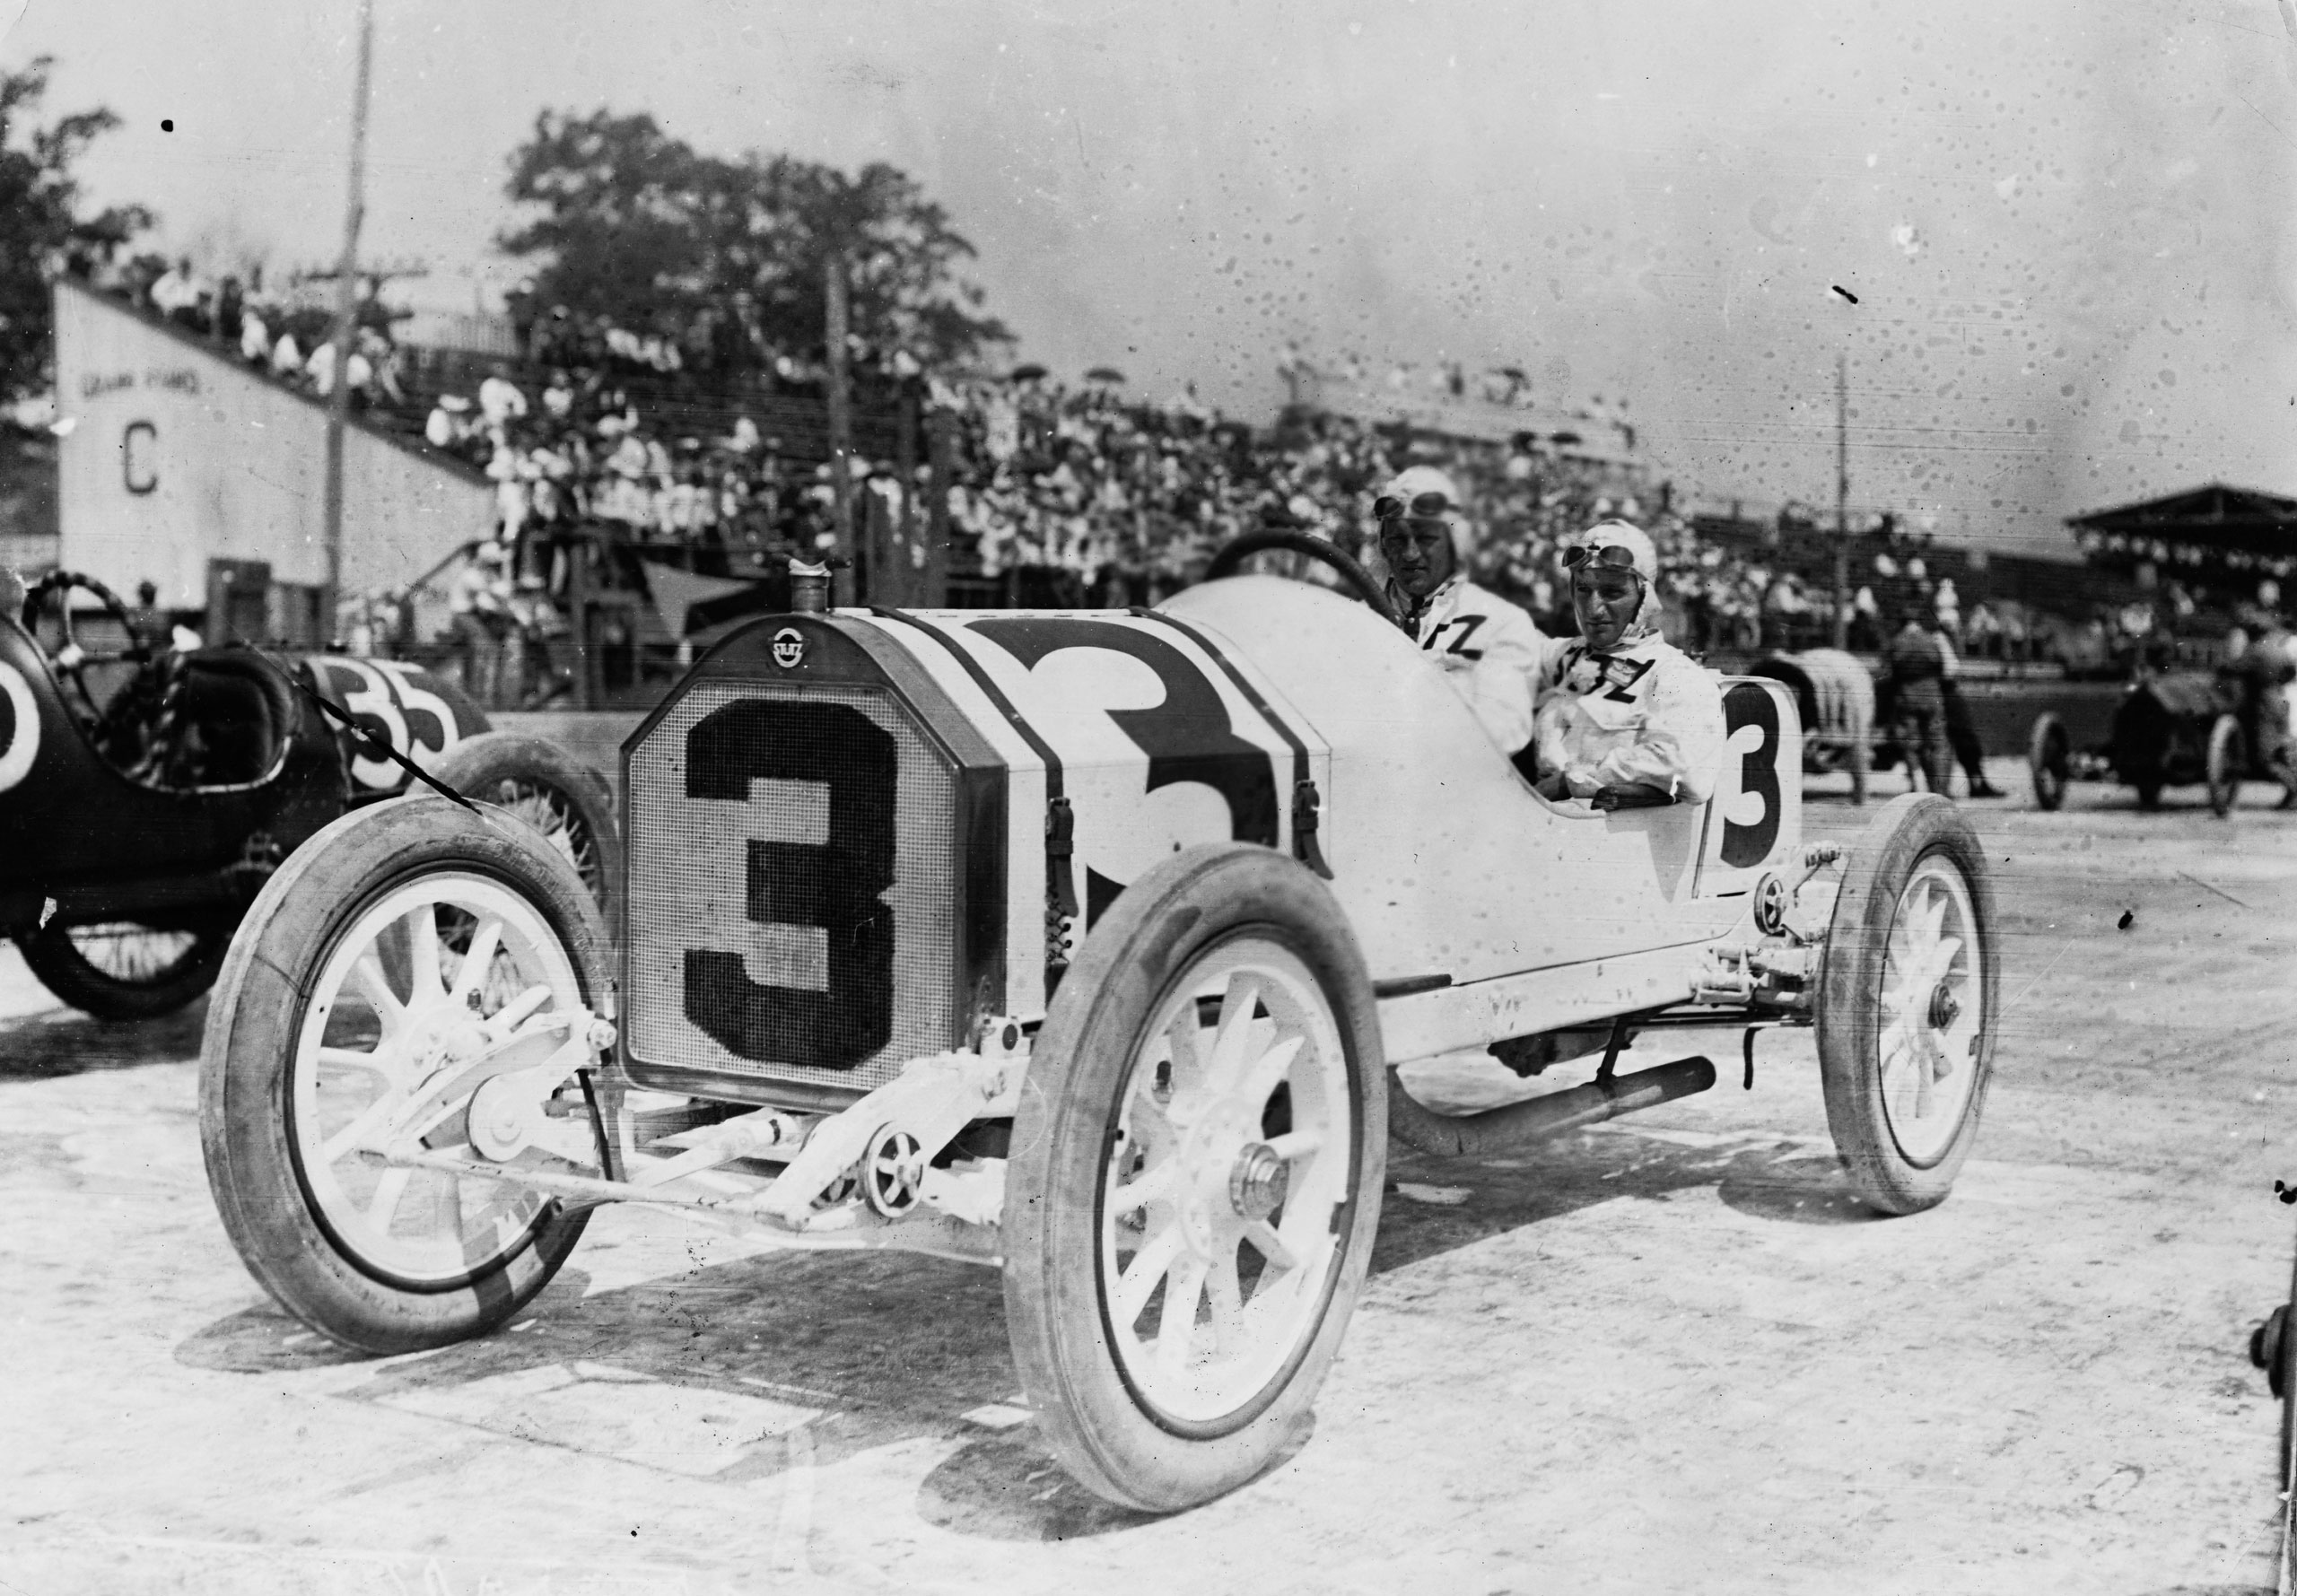 Gil Andersen of Norway with his riding mechanic aboard the #3 Stutz Motor Company Stutz Bearcat racer before the start of the third running of the Indianapolis 500 Mile Race on May 30, 1913 at the Indianapolis Motor Speedway.